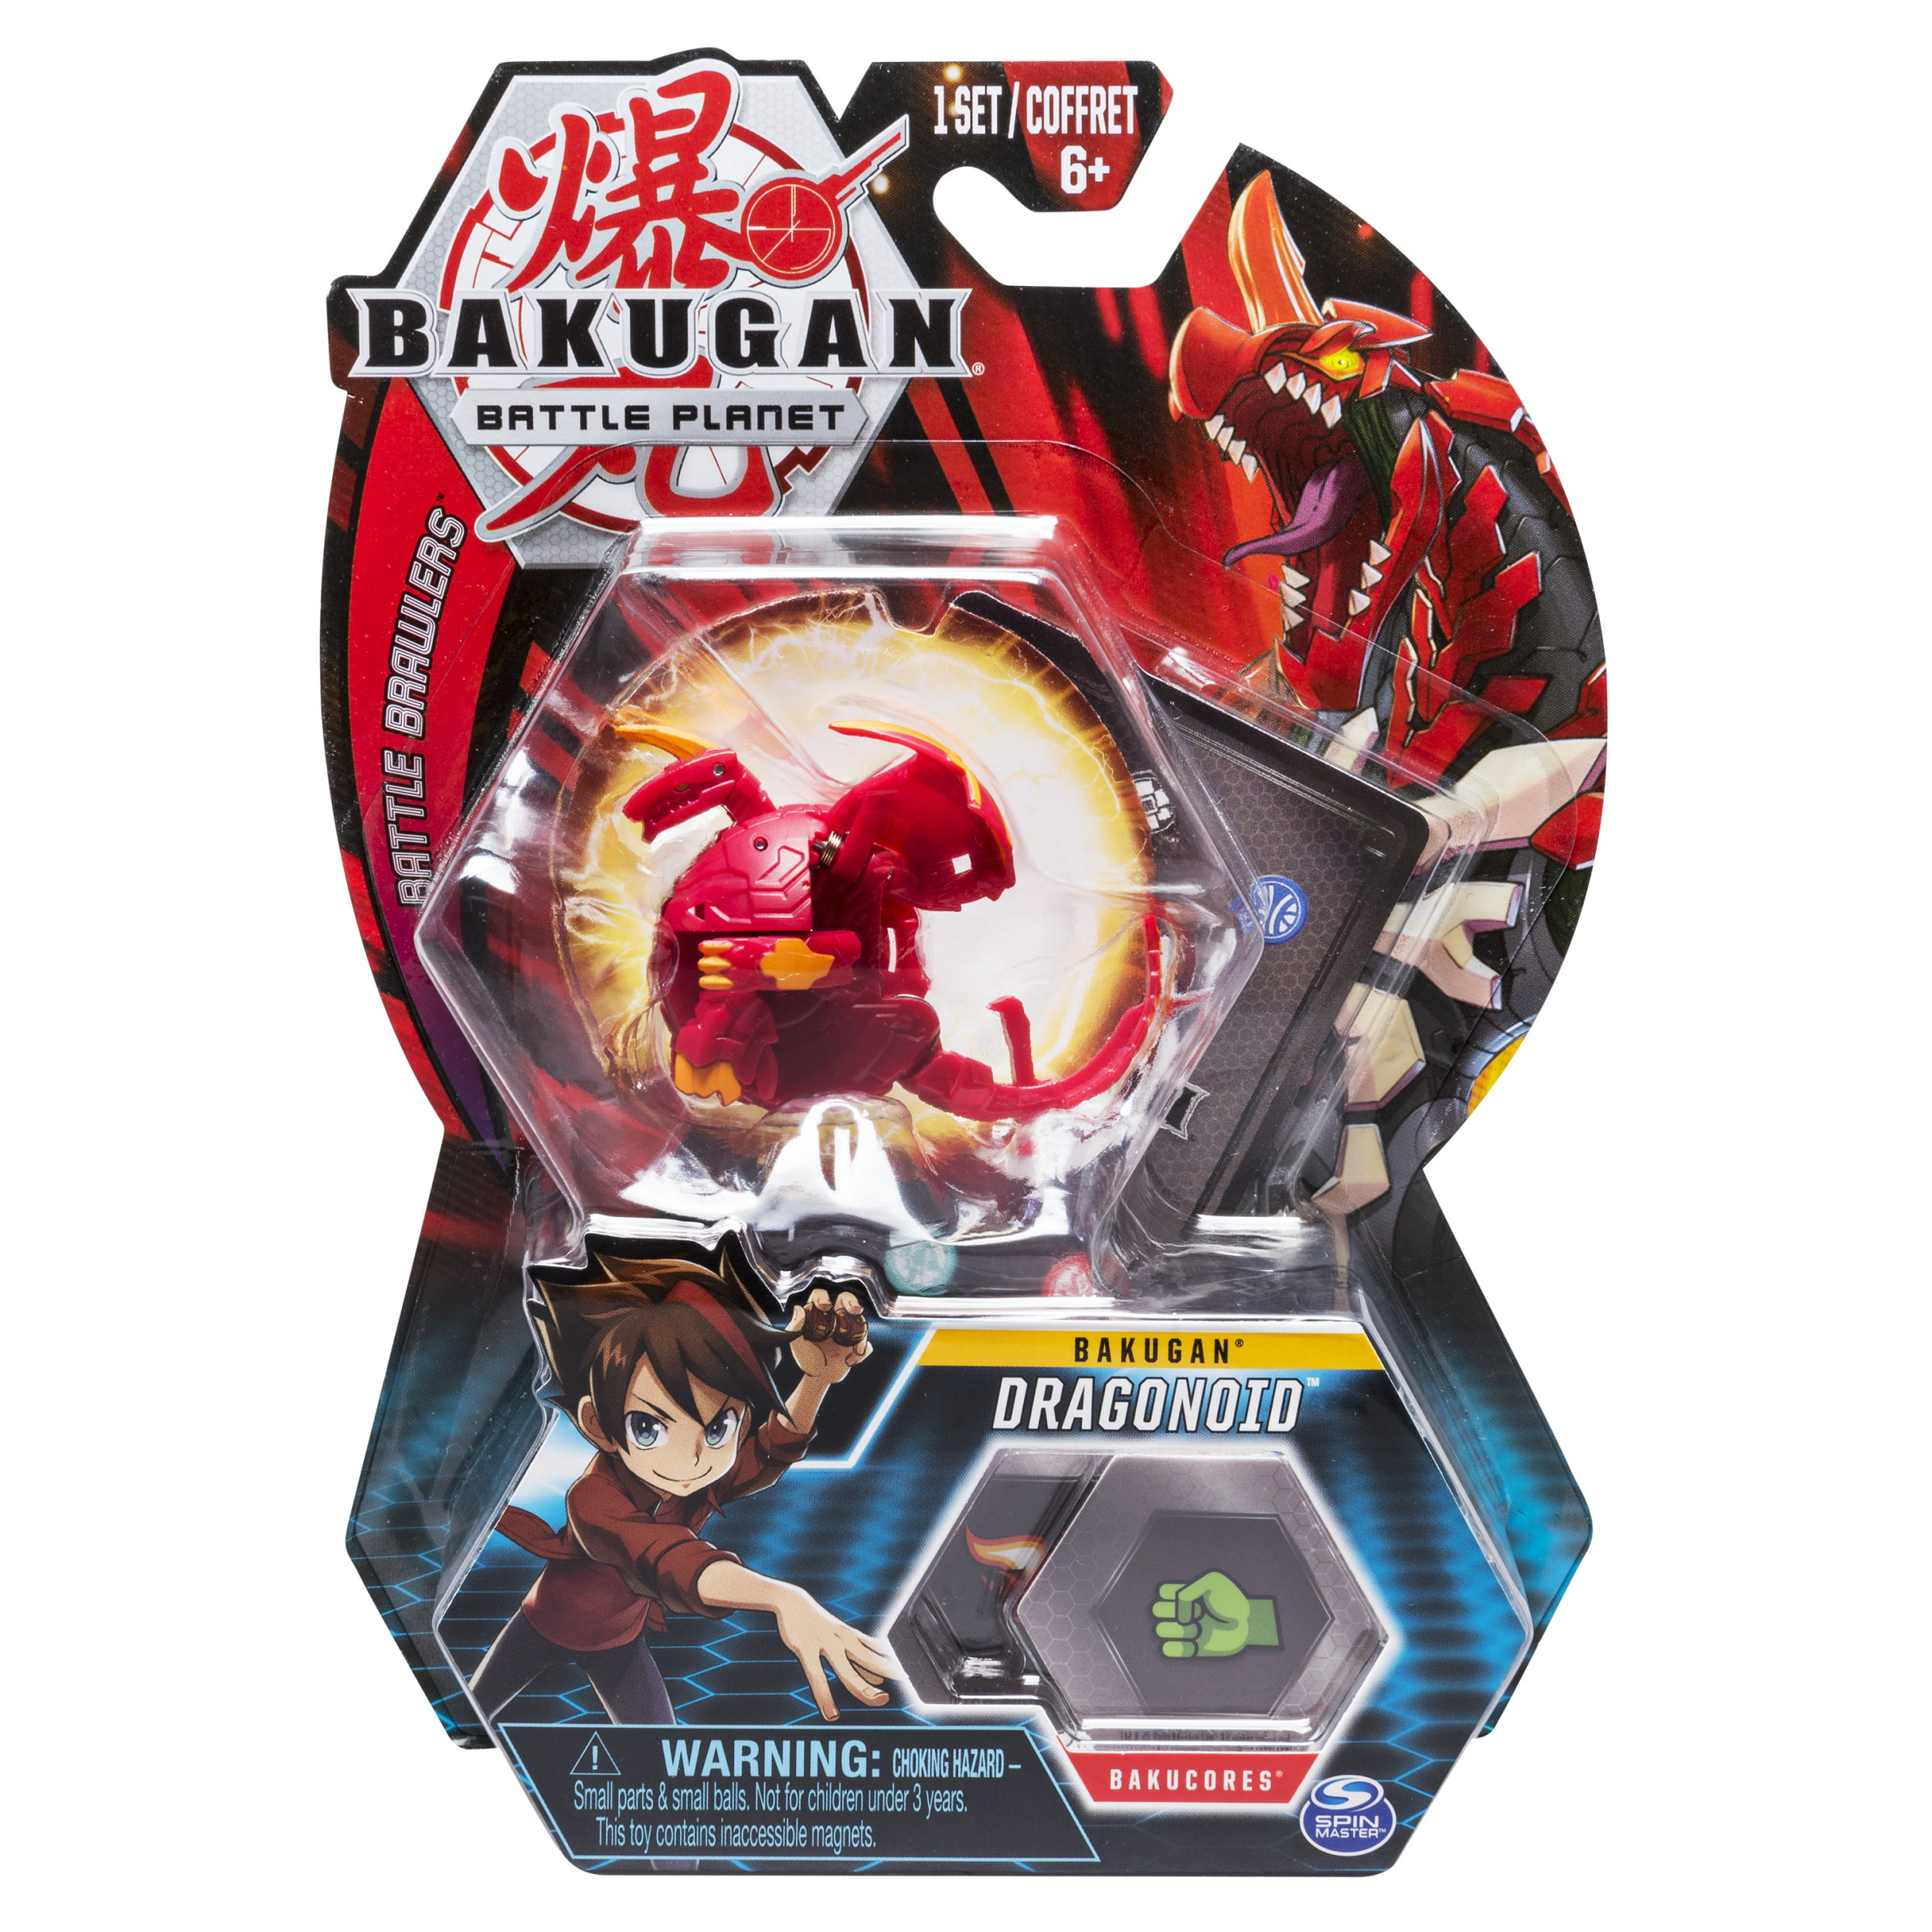 Bakugan Dragonoid 2 Inch Tall Collectible Action Figure And Trading Card For Ages 6 And Up Walmart Com Walmart Com